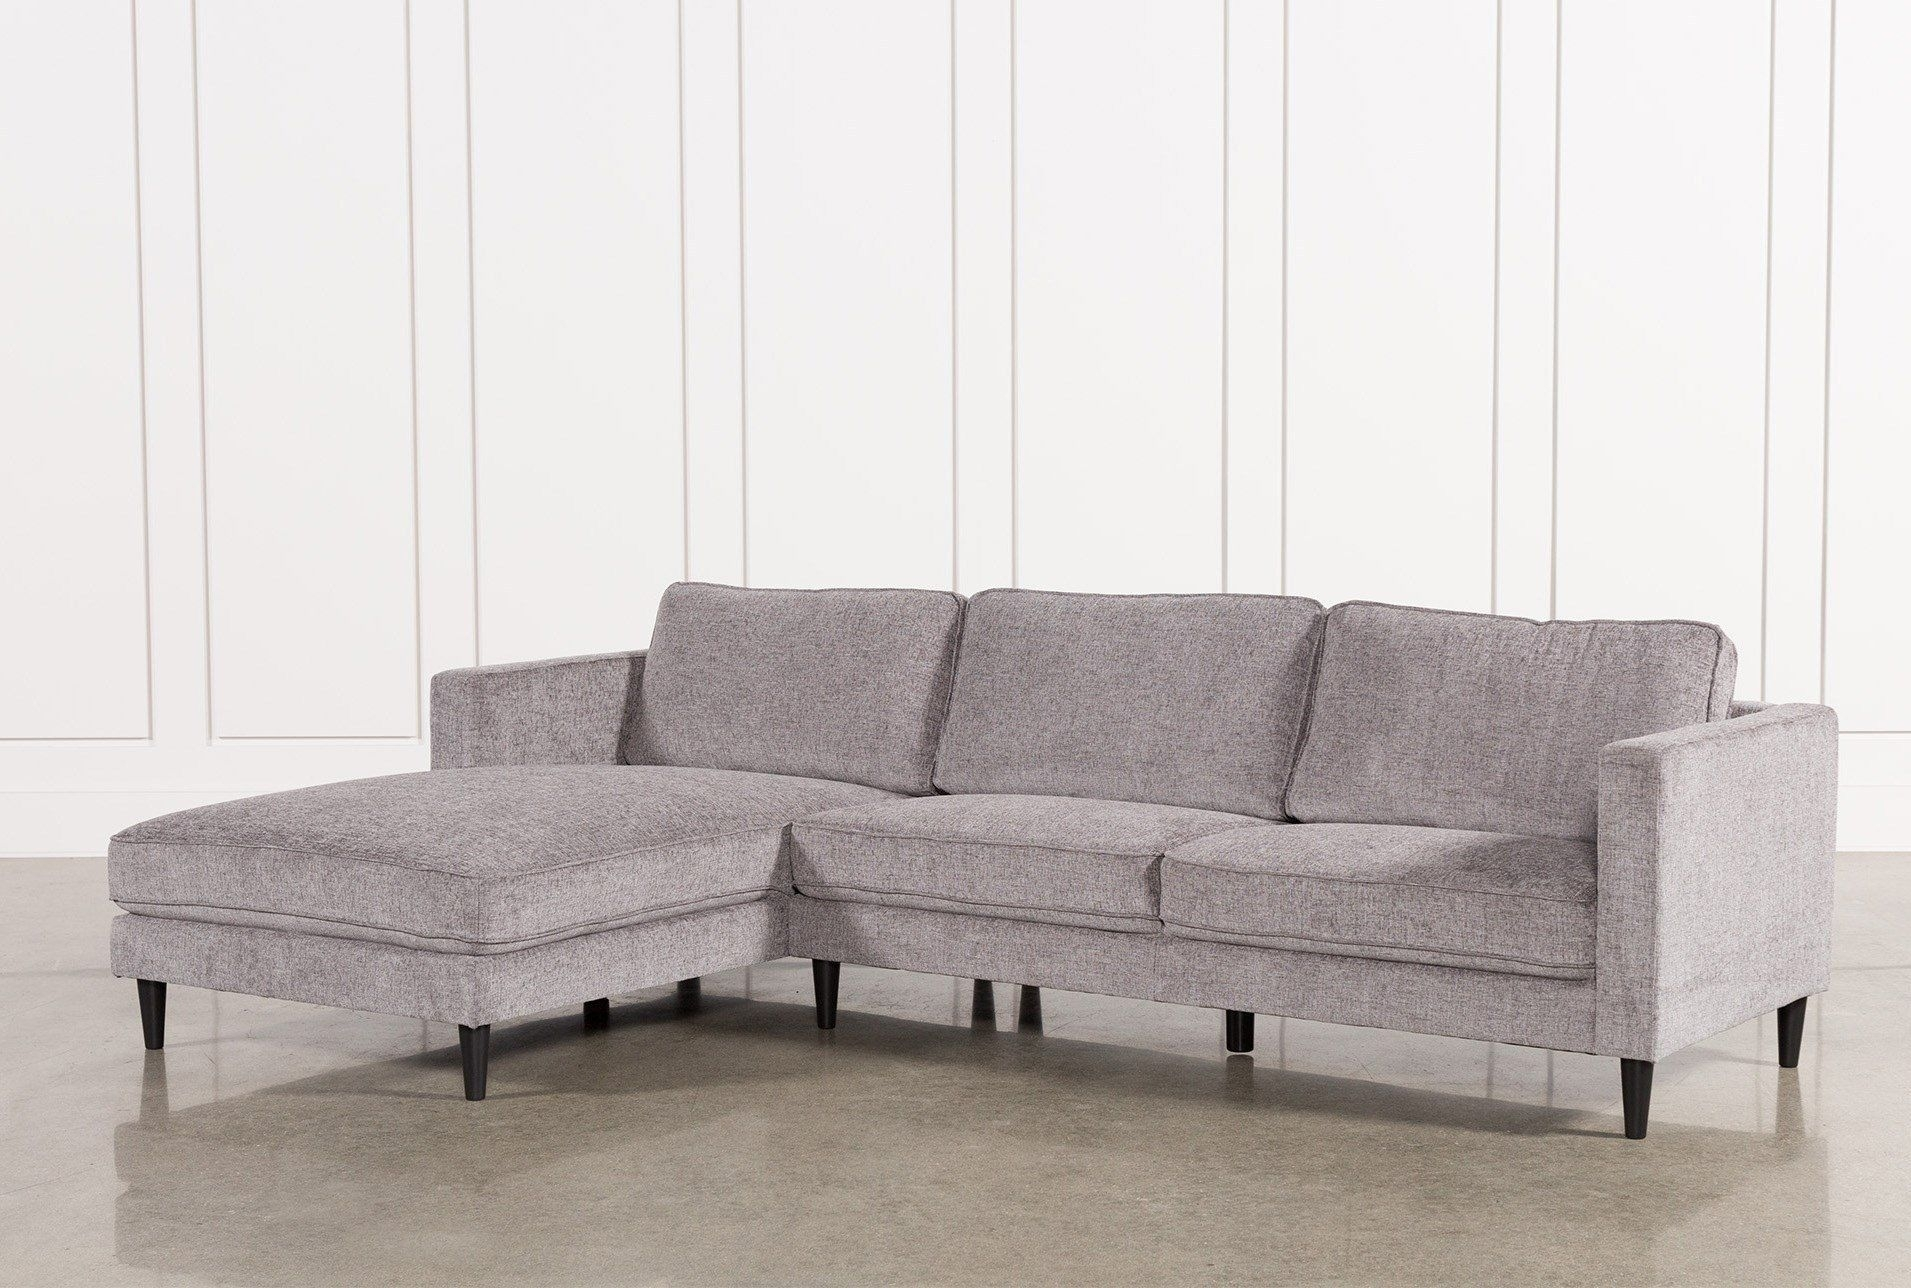 Cosmos Grey 2 Piece Sectional W/laf Chaise | Couches | Pinterest Pertaining To Avery 2 Piece Sectionals With Laf Armless Chaise (Image 10 of 25)